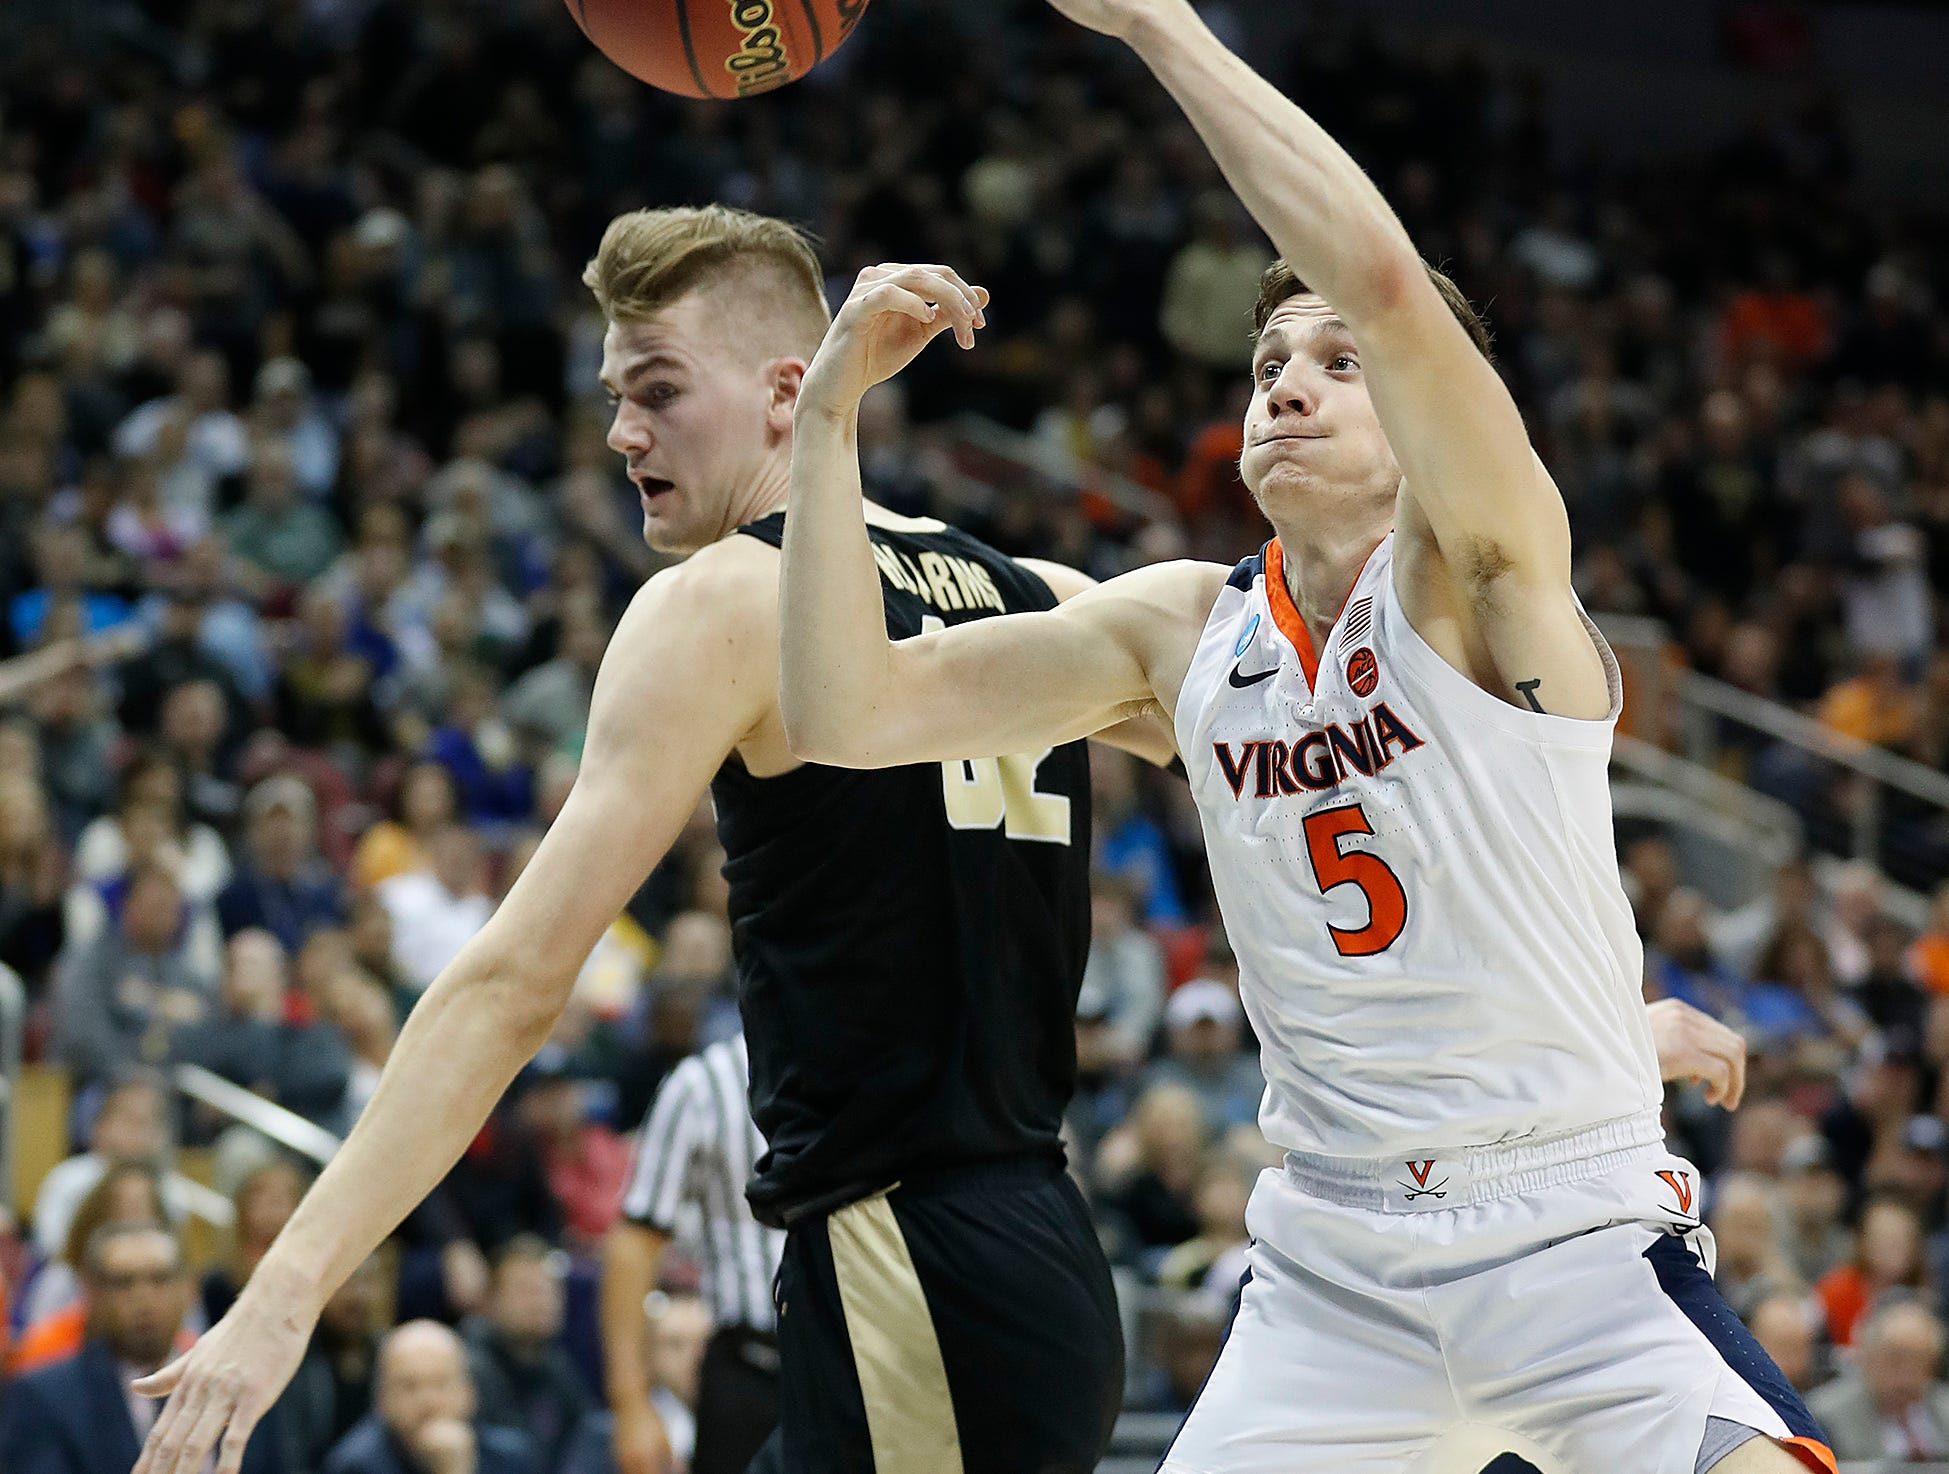 "Virginia Cavaliers guard Kyle Guy (5) and Purdue Boilermakers center Matt Haarms (32) fight for a rebound in the first half of their NCAA Division I Basketball Championship ""Elite 8"" basketball game at the KFC Yum! Center in Louisville, KY., on Saturday, Mar 30, 2019."